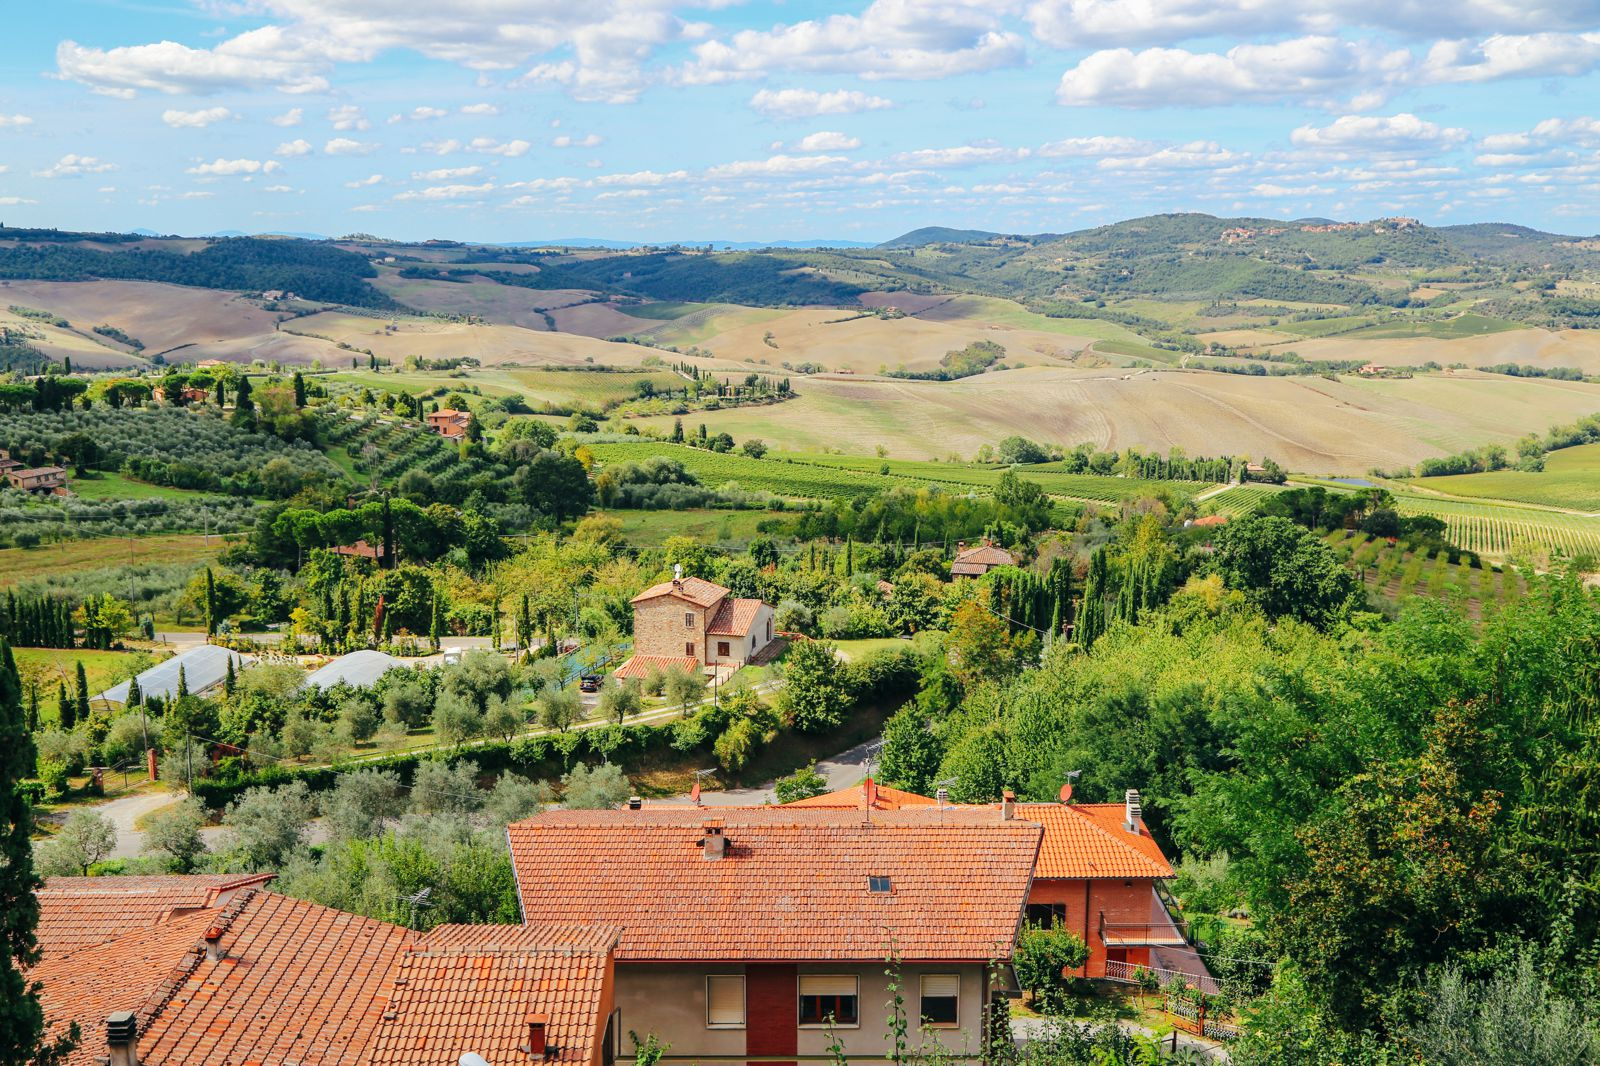 Montepulciano - The Italian Medieval Town In The Mountains... (2)